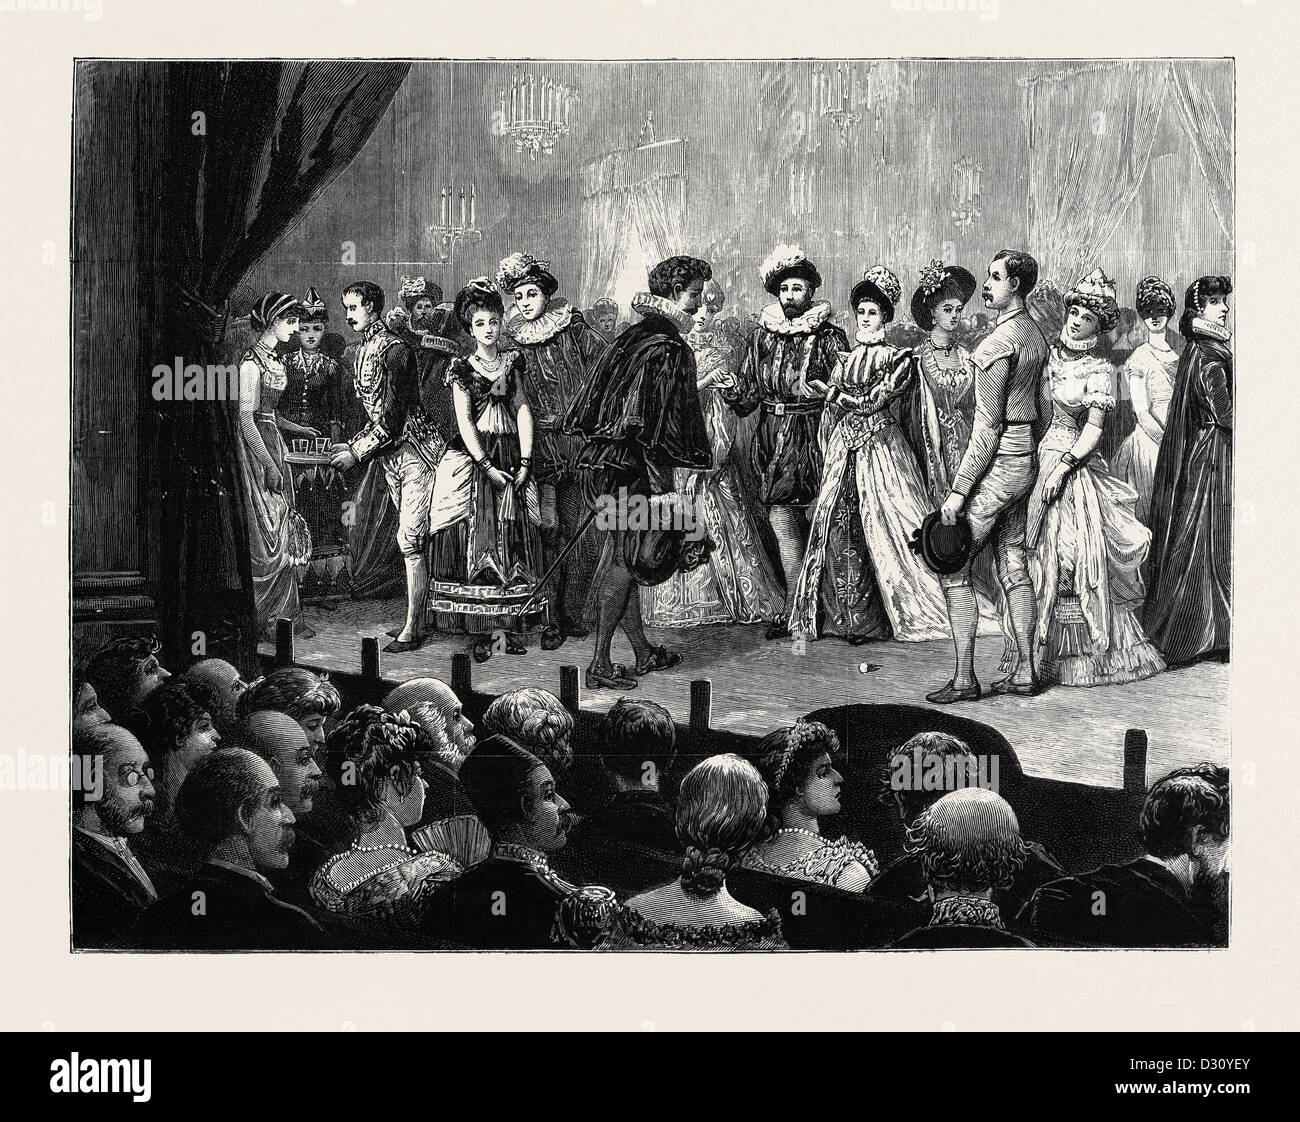 AMATEUR PERFORMANCE OF 'ONE HOUR' AT THE BRITISH EMBASSY, CONSTANTINOPLE, 'THE NURSERY RHYME QUADRILLE' - Stock Image